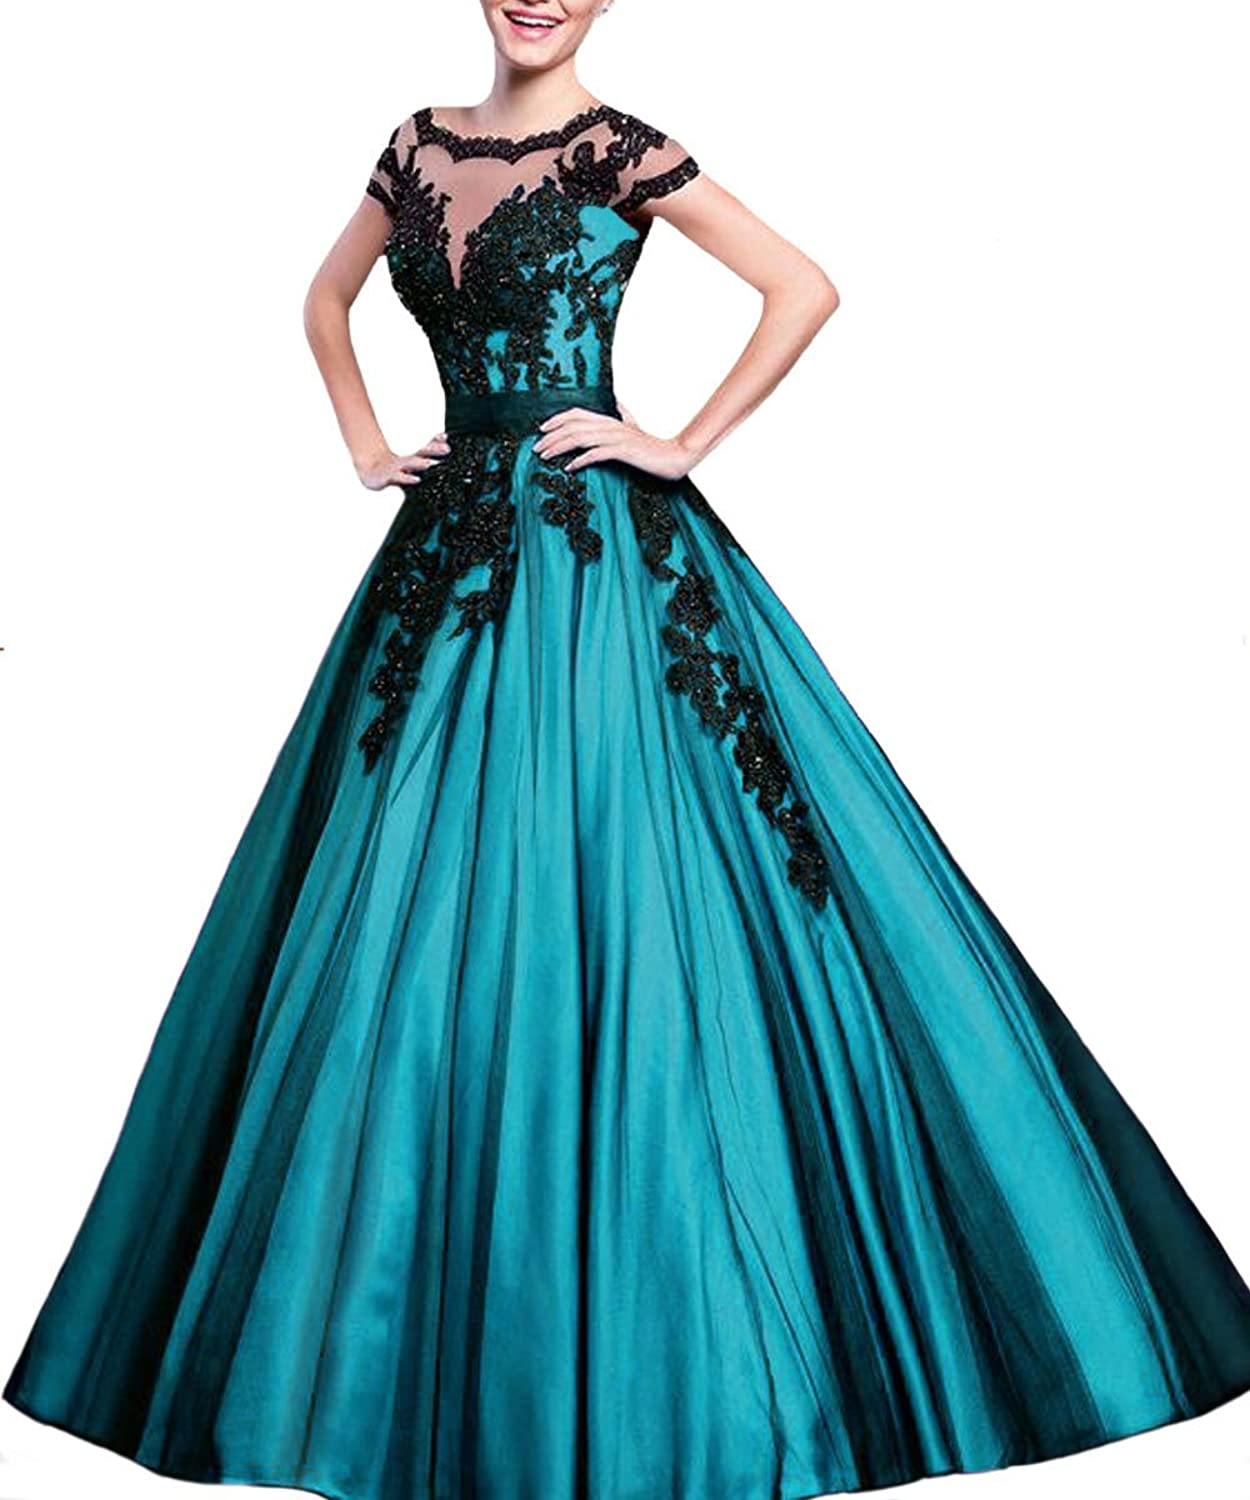 JQLD Women's Sexy Illusion High Neck Ball Gown Prom Dresses Black Applique Quinceanera Dress